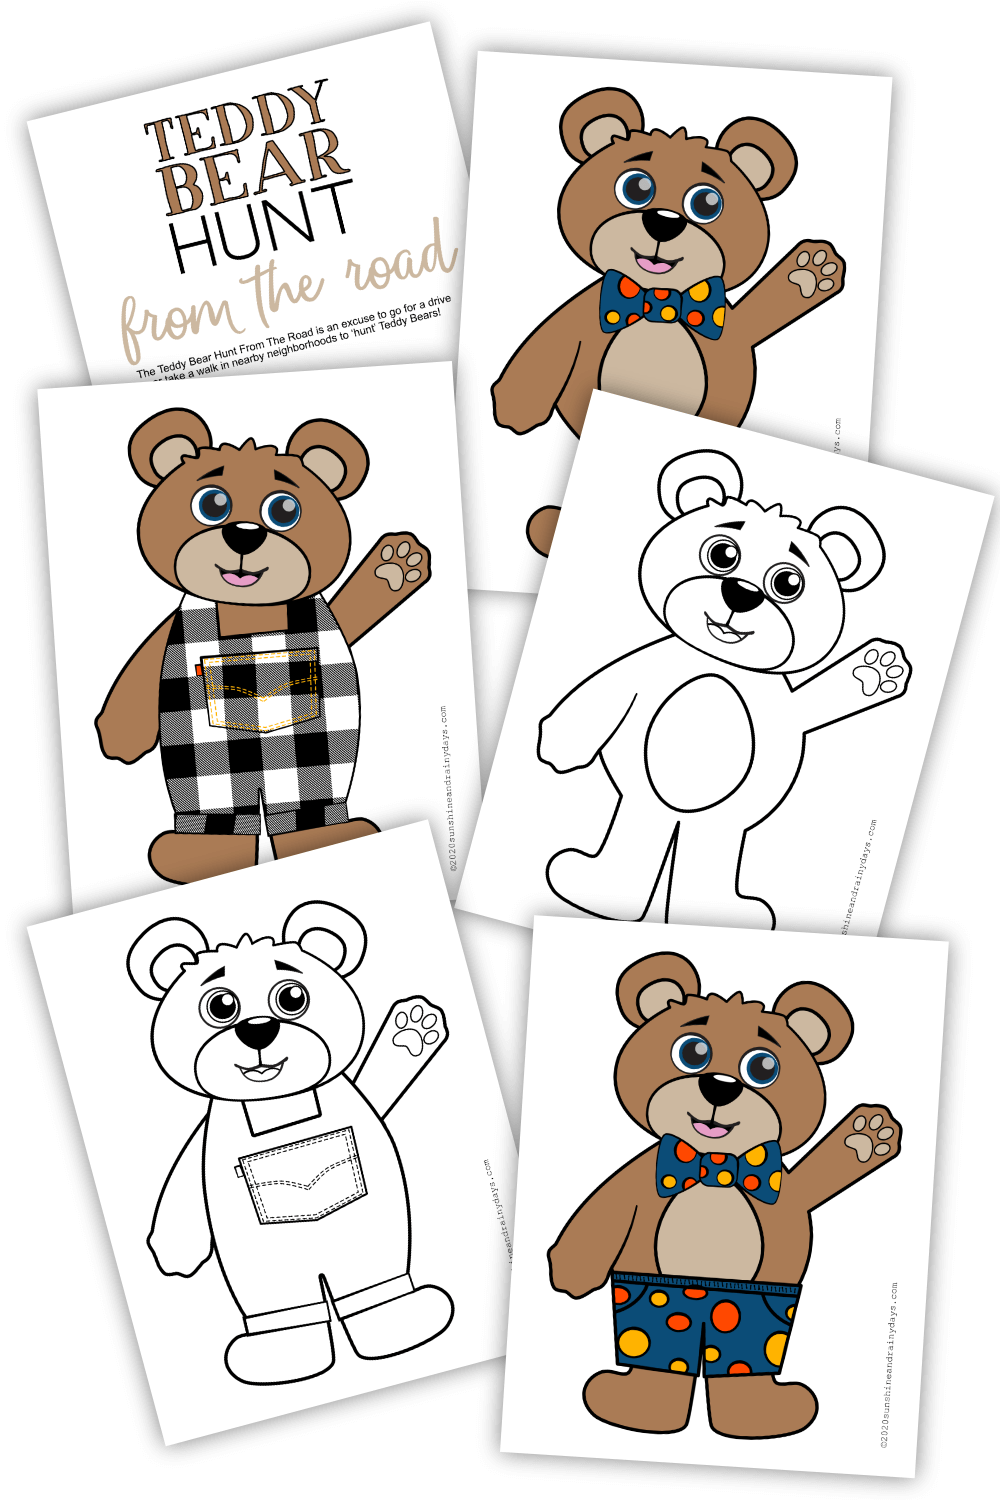 Teddy Bear Hunt From The Road (PDF)